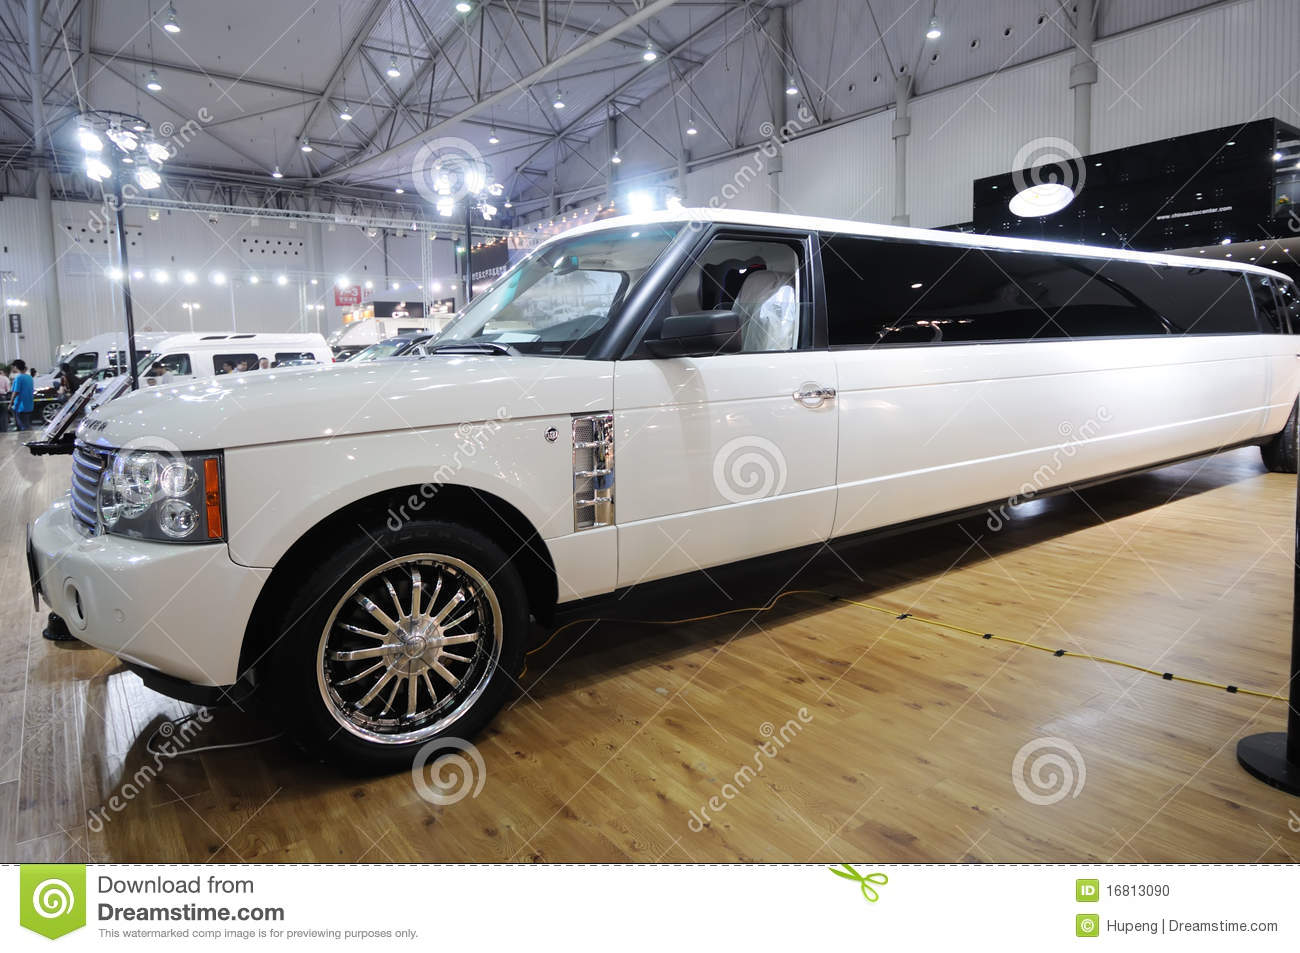 Range Rover Logo Vector >> Stretched Range Rover Limousine Editorial Image - Image: 16813090